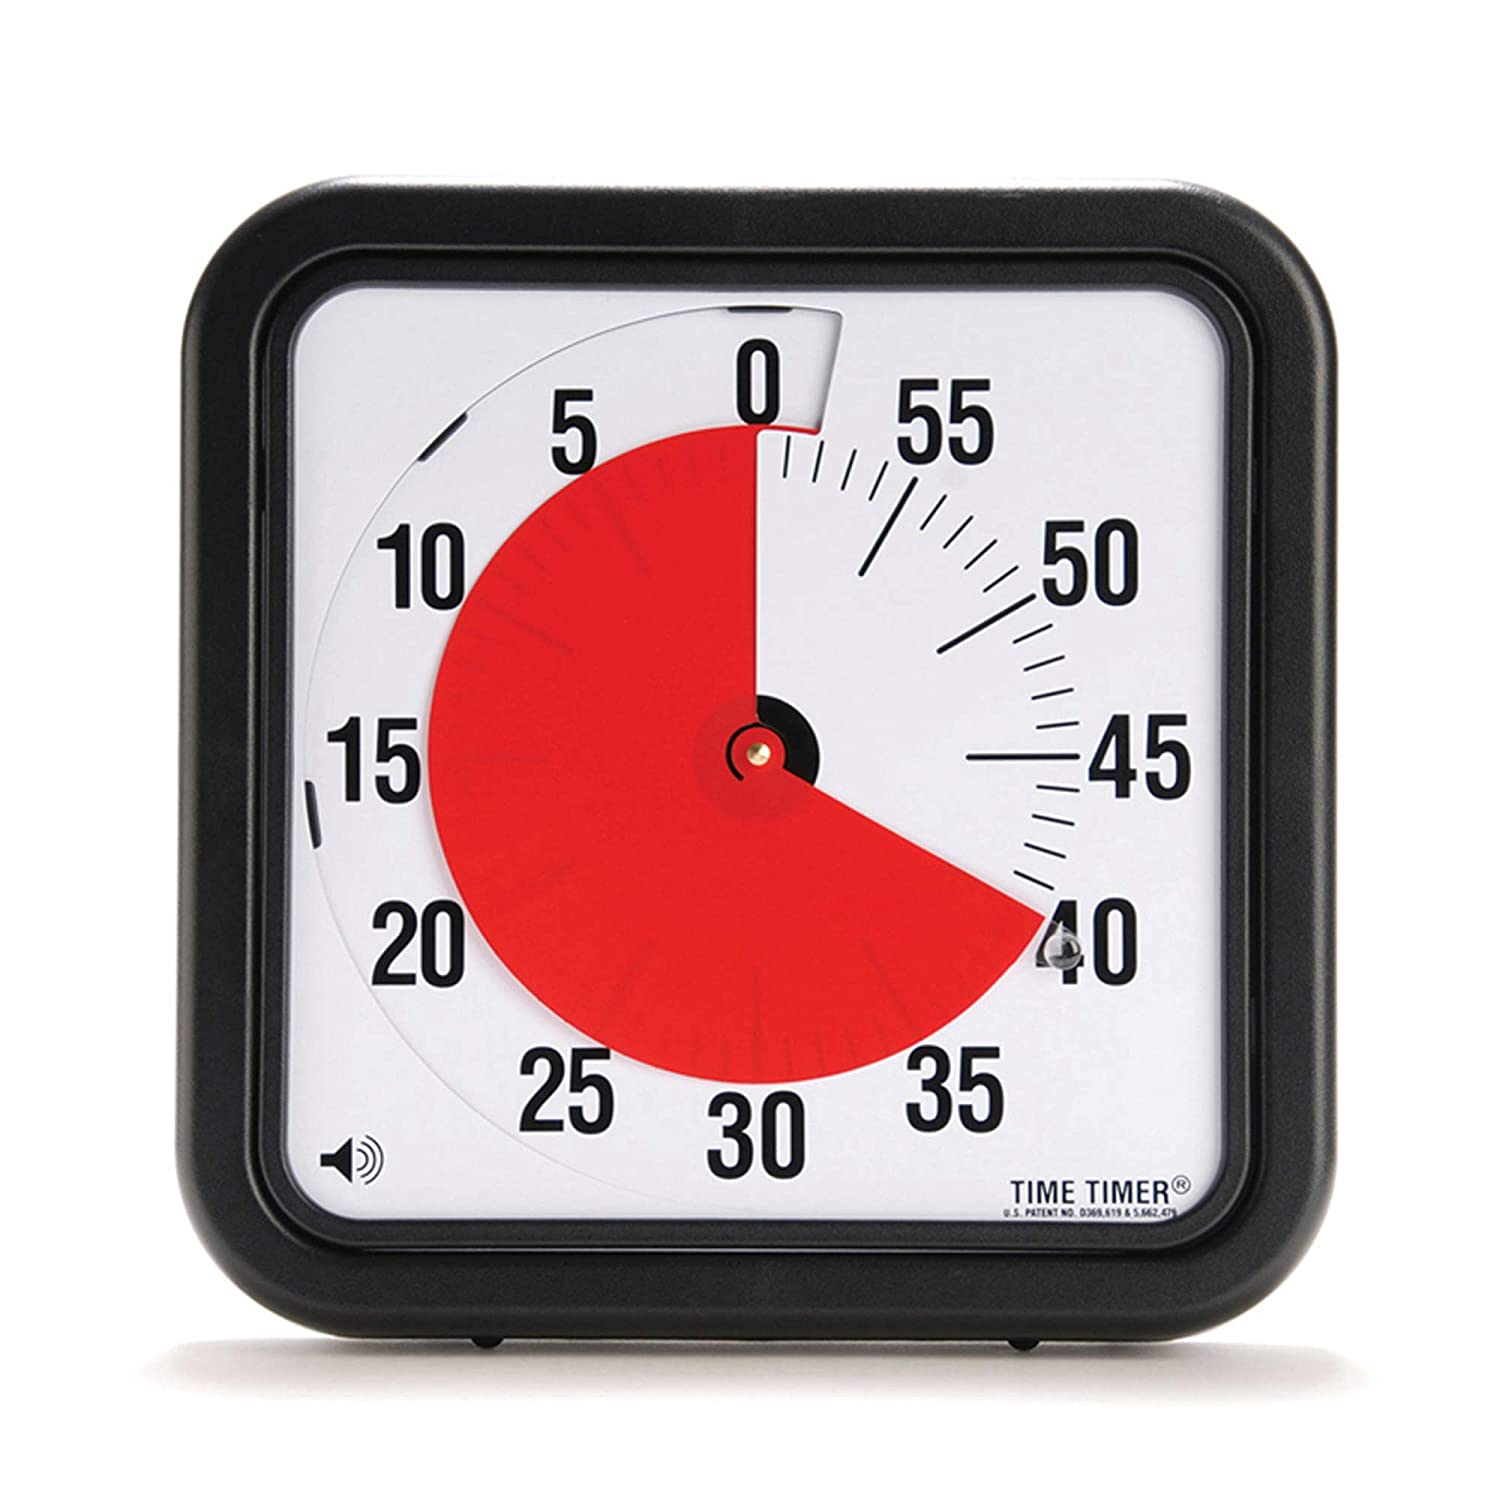 Time Timer Audible Countdown Timer - 8 inch - Black TTA1-W